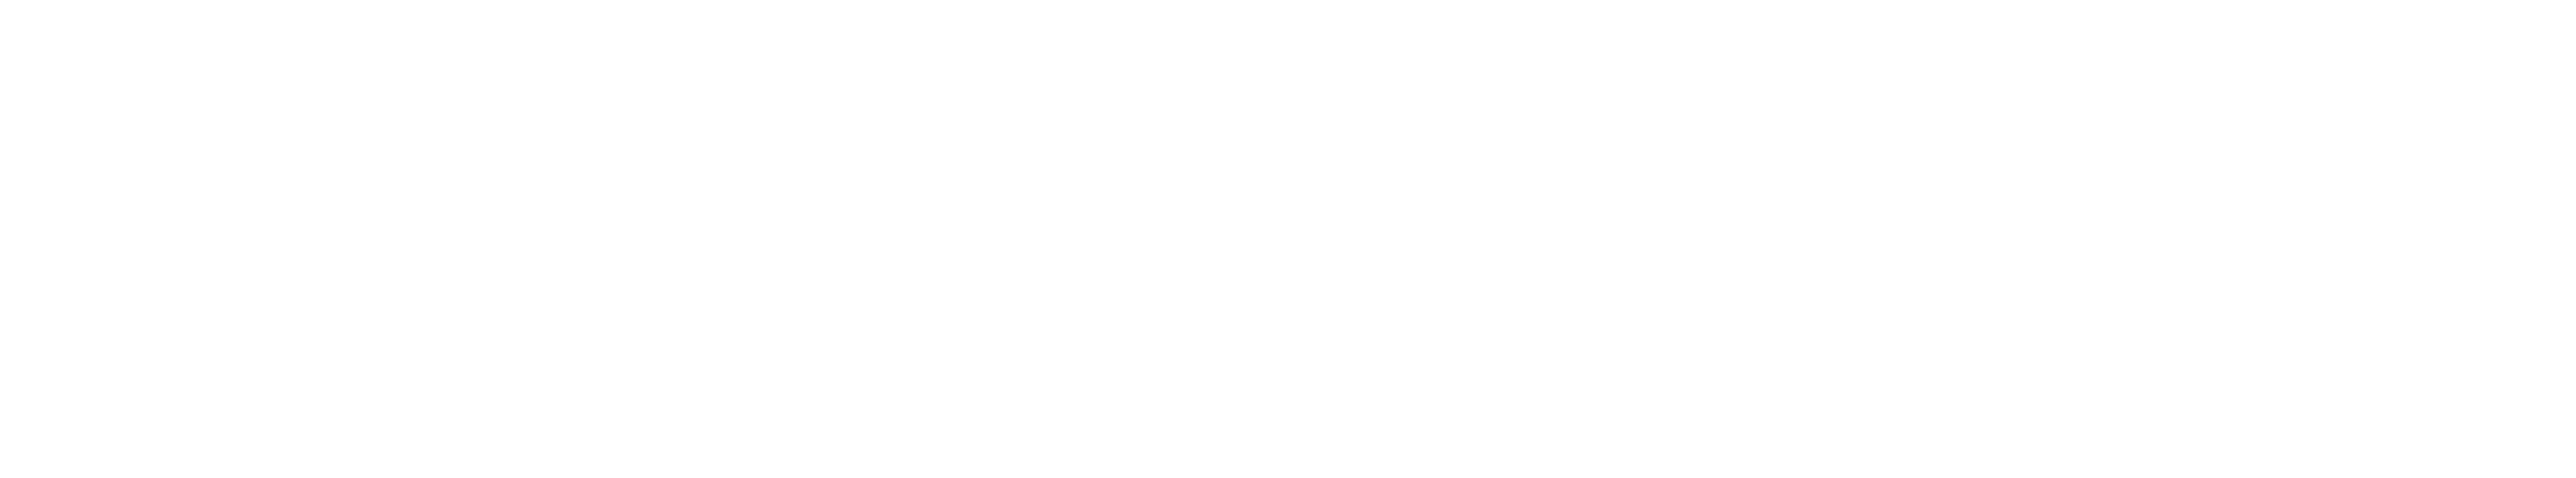 Thierry Mordant®